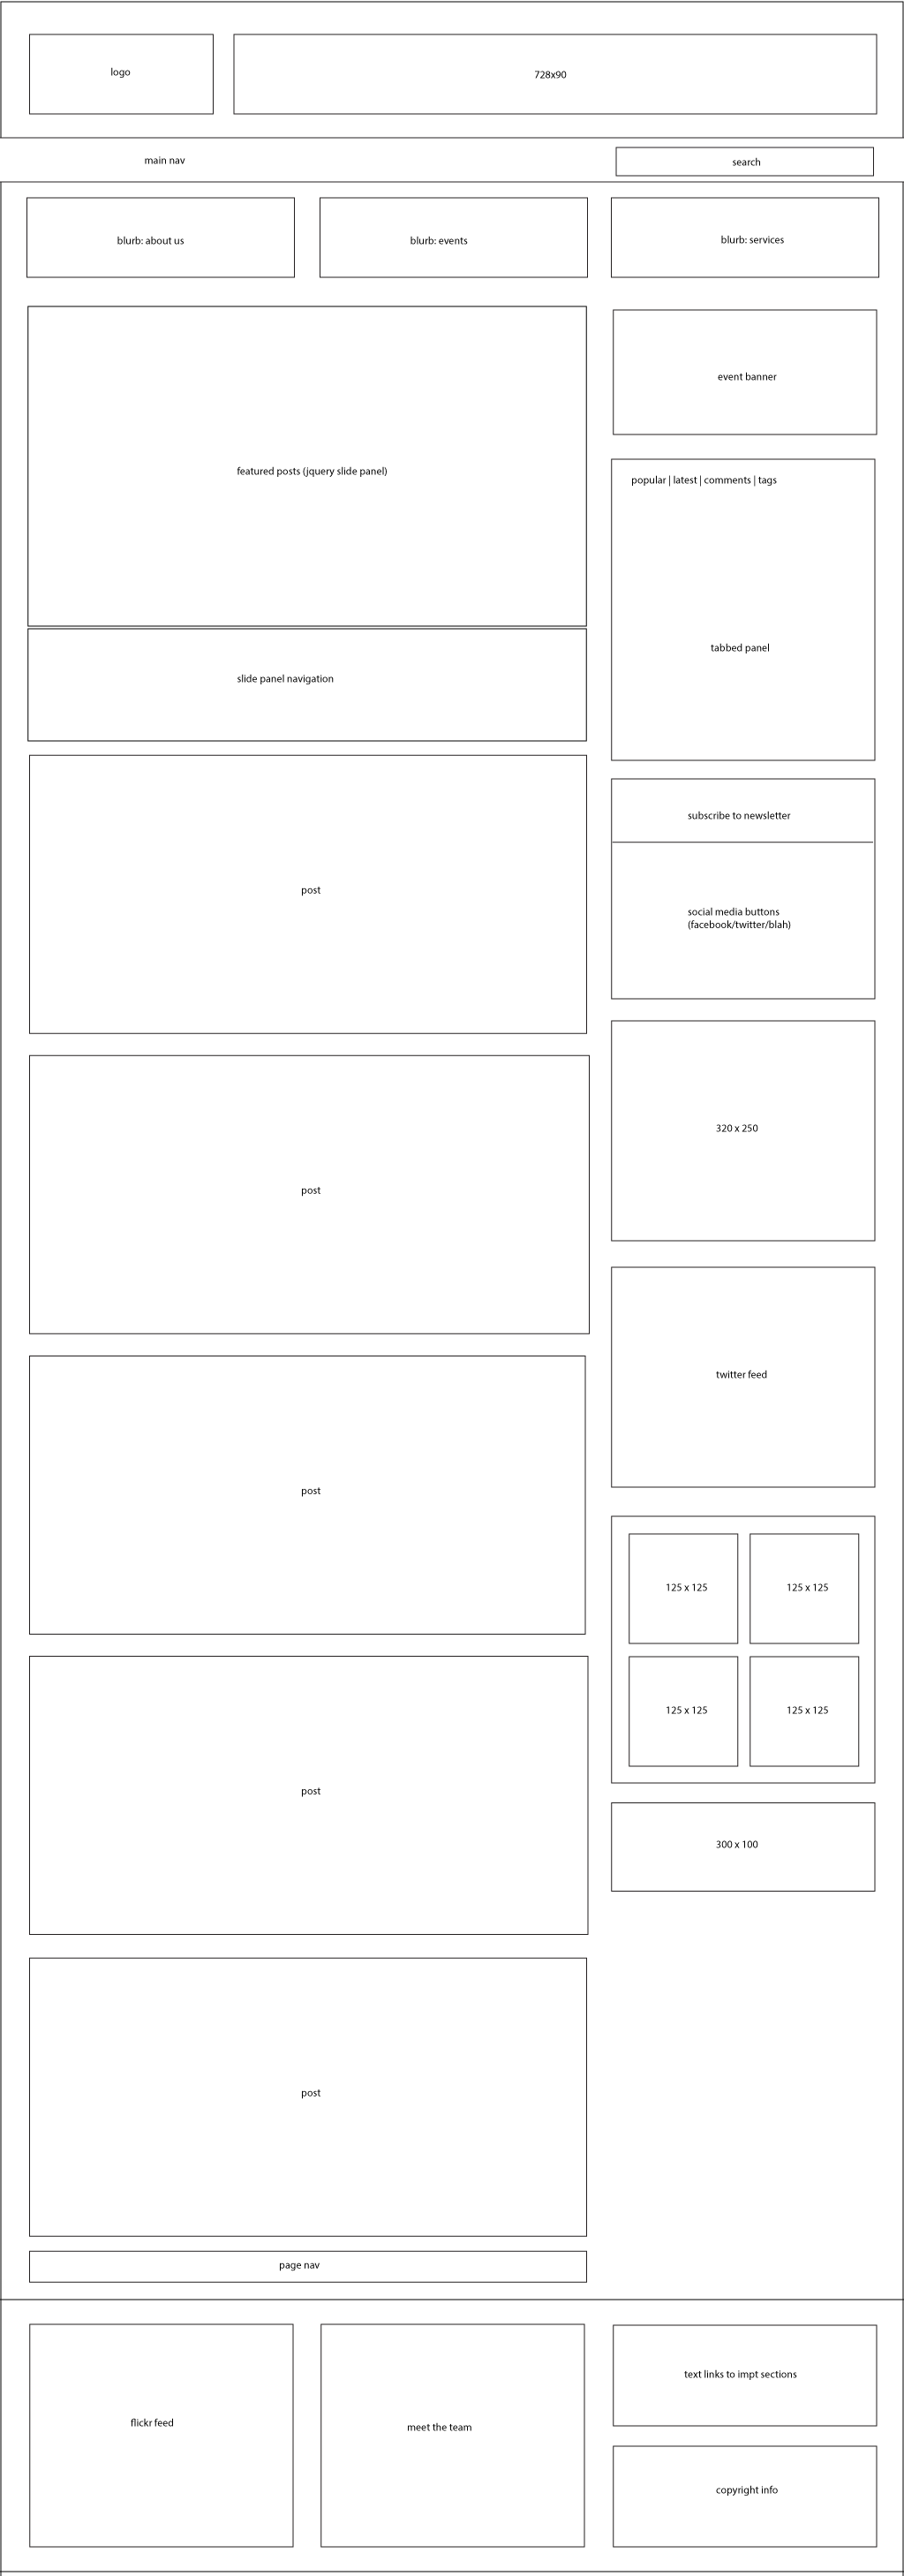 website wireframe diagram example 36 volt a beginners guide to wireframing